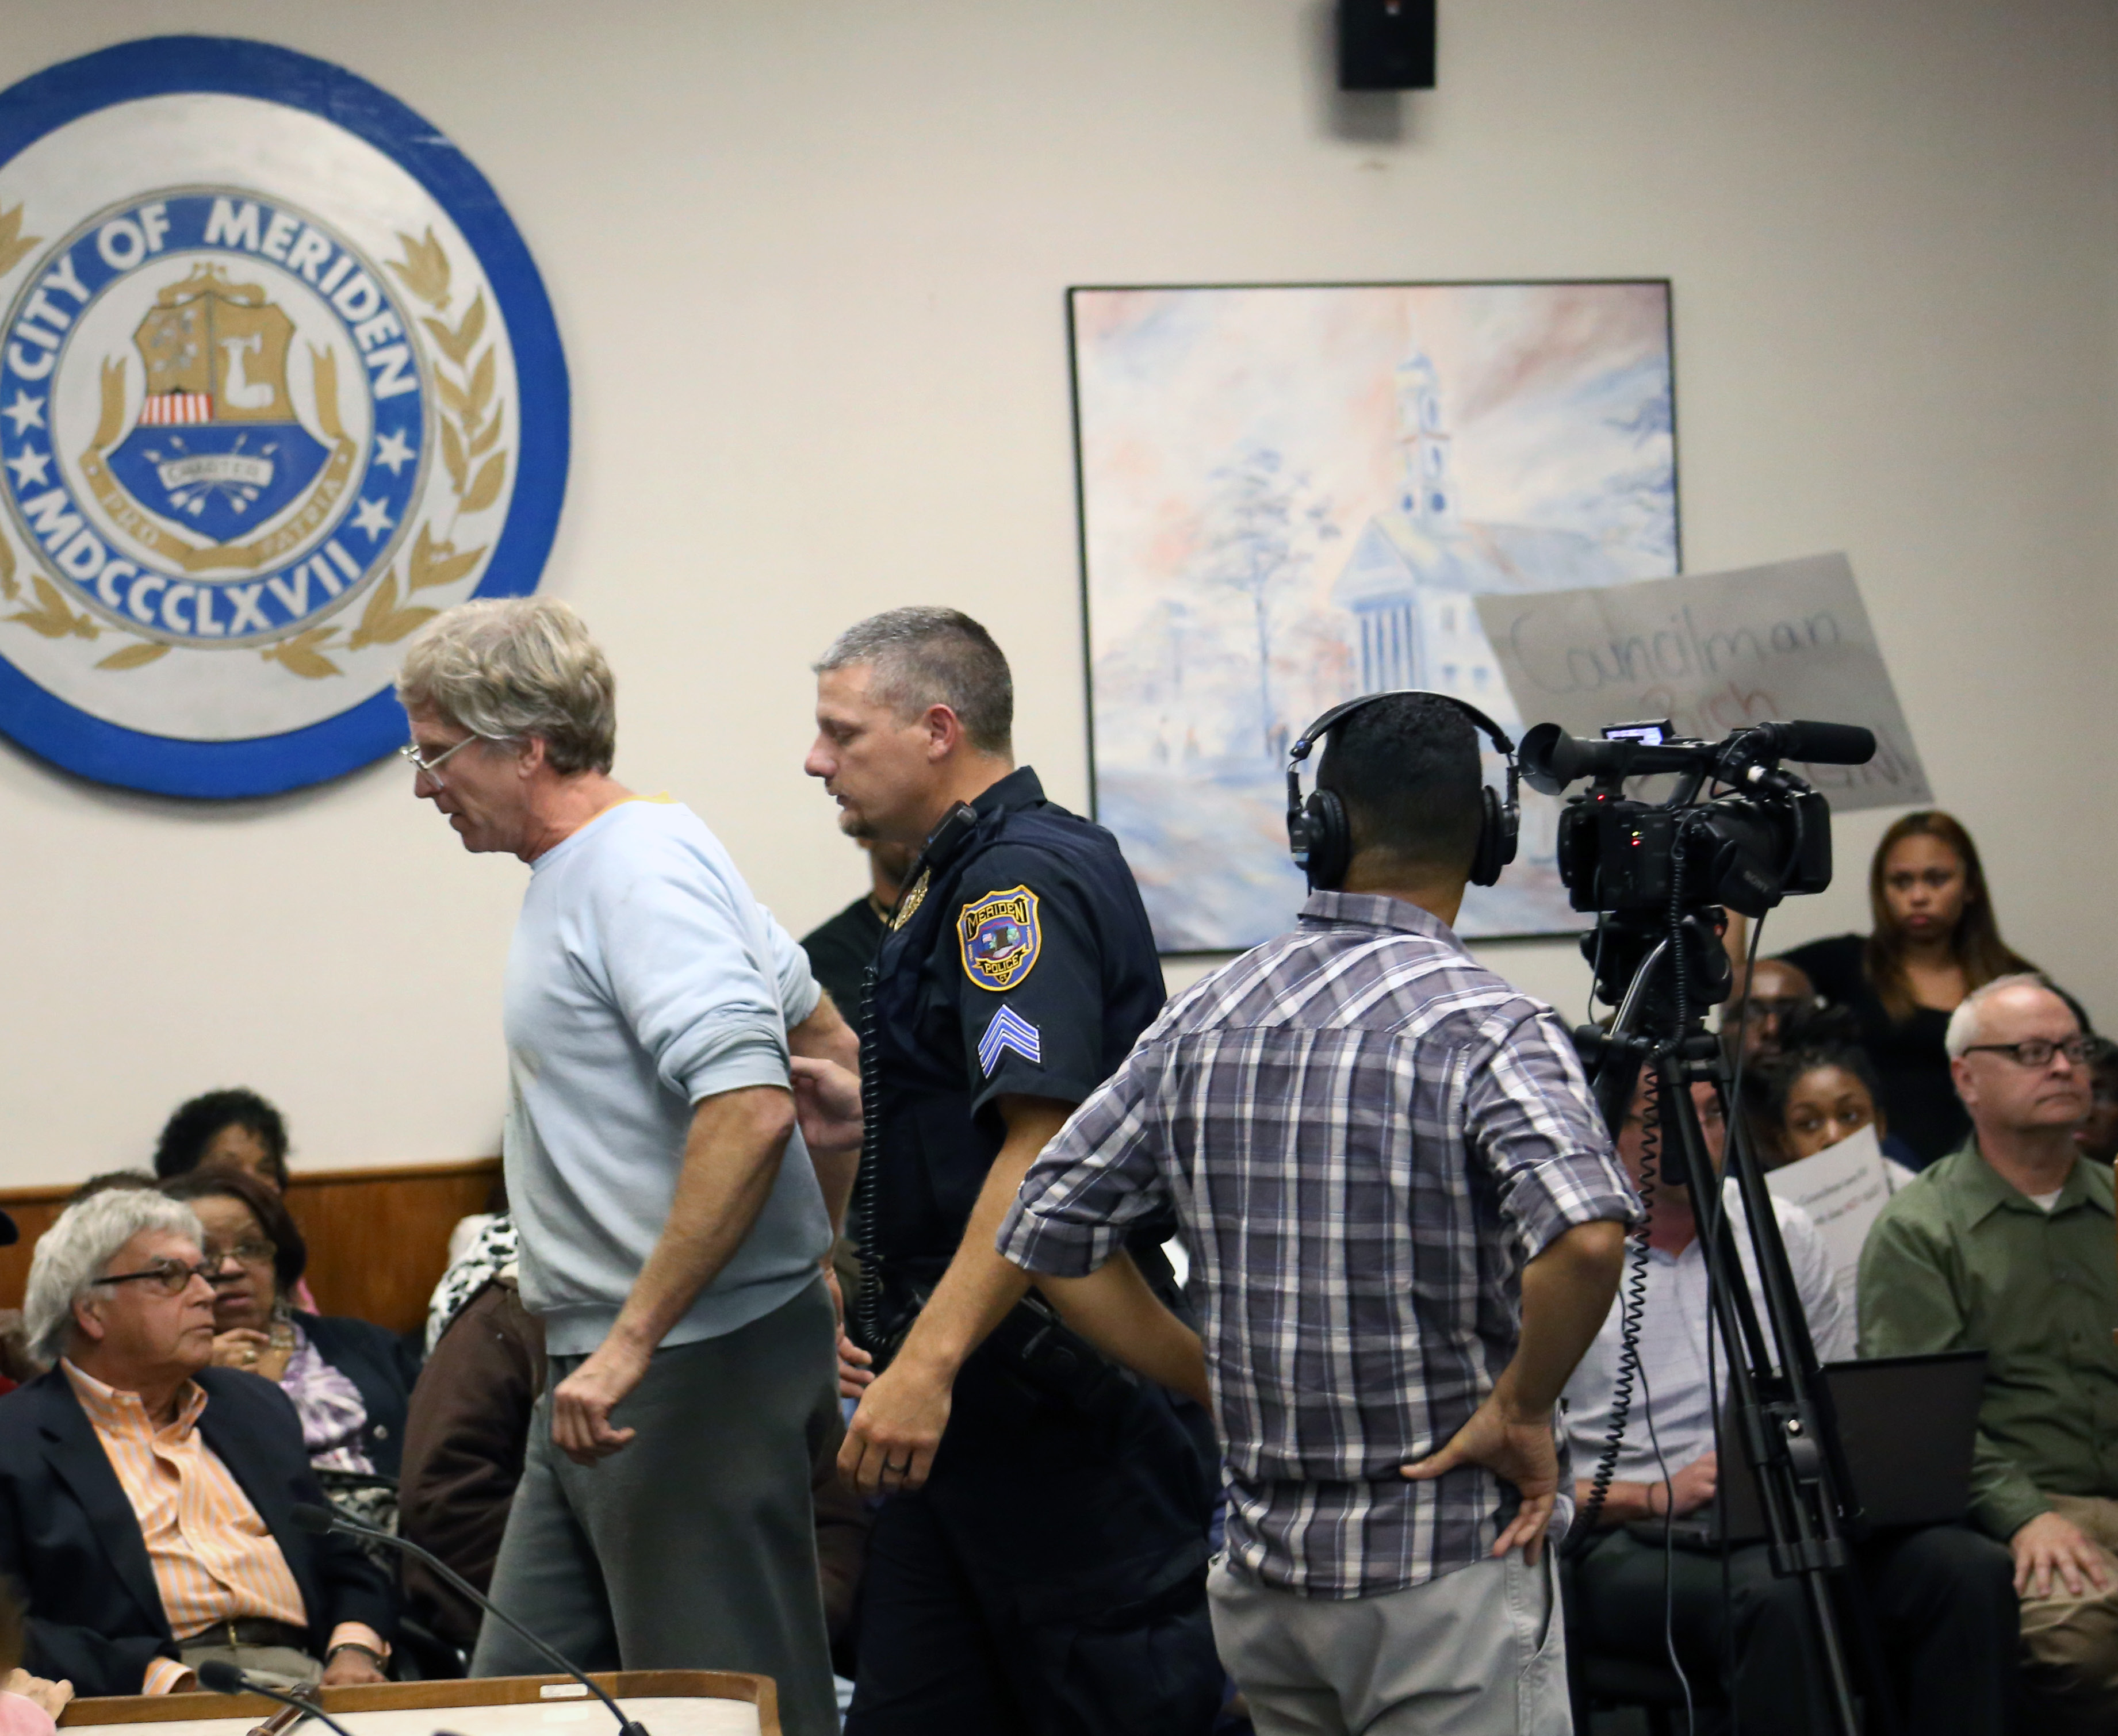 FILE PHOTO -- A Meriden police officer escorts a speaker from a City Council meeting Monday Oct. 6, 2014 after an argument broke out during a public comment session . | Richie Rathsack/Record-Journal